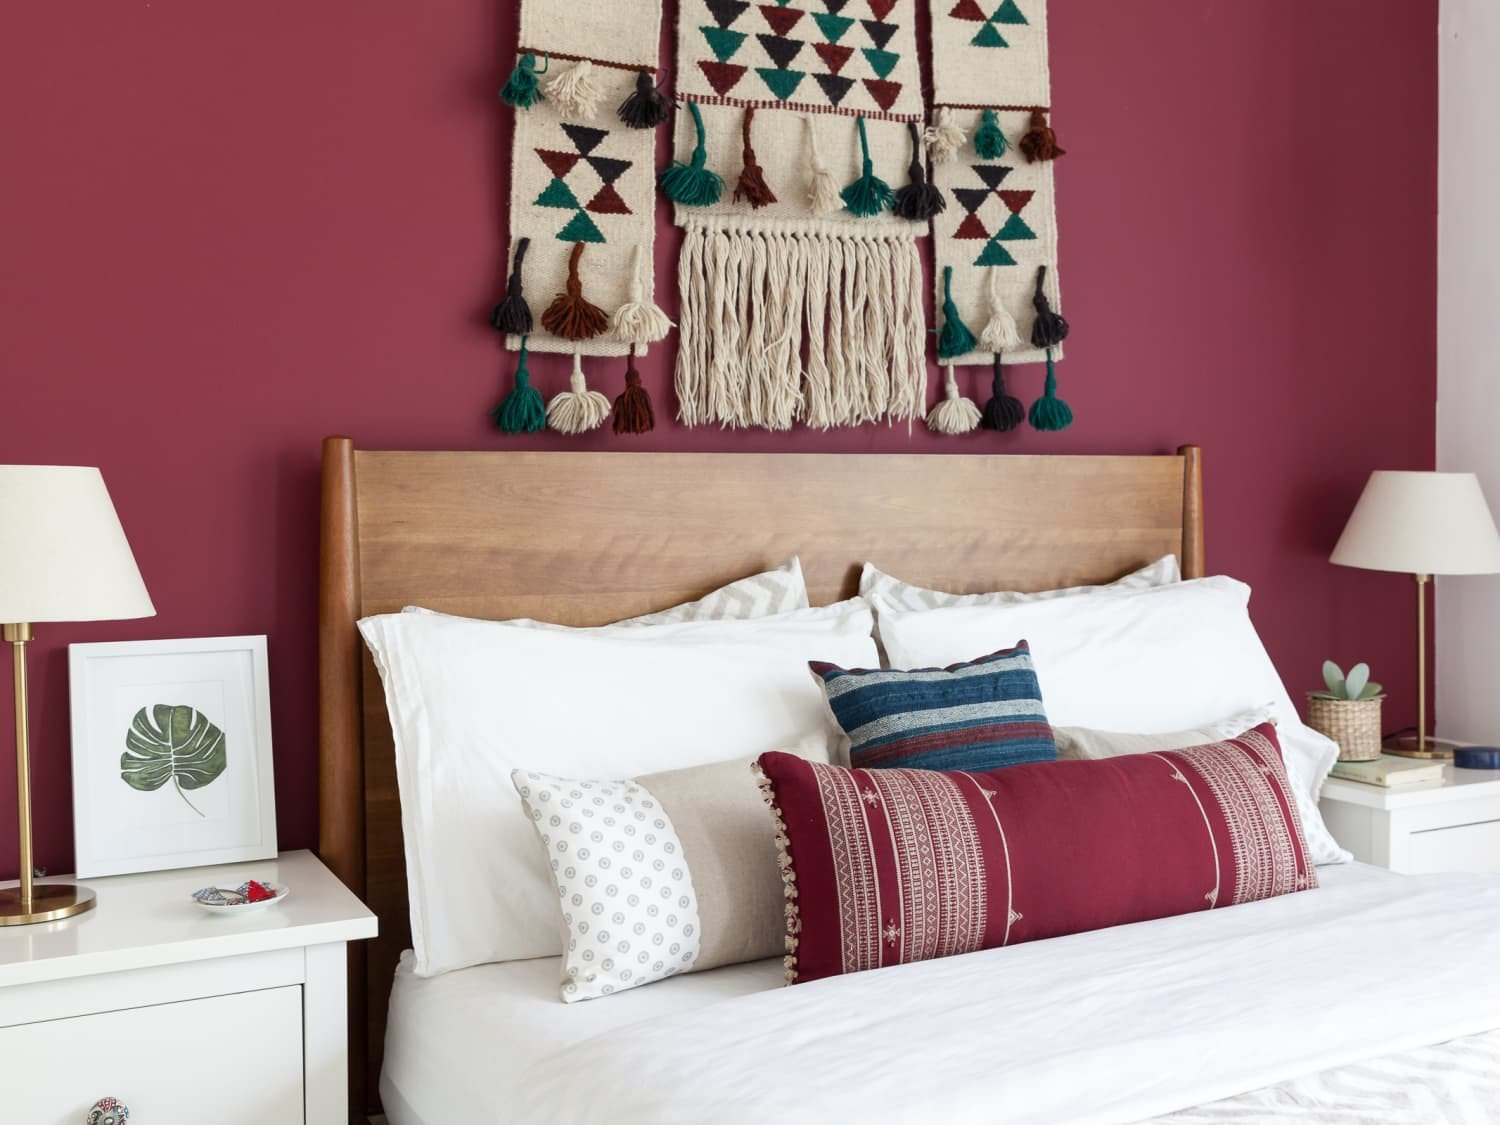 Homemade Wall Decoration Ideas for Bedroom New Ideas for What to Put Your Bed